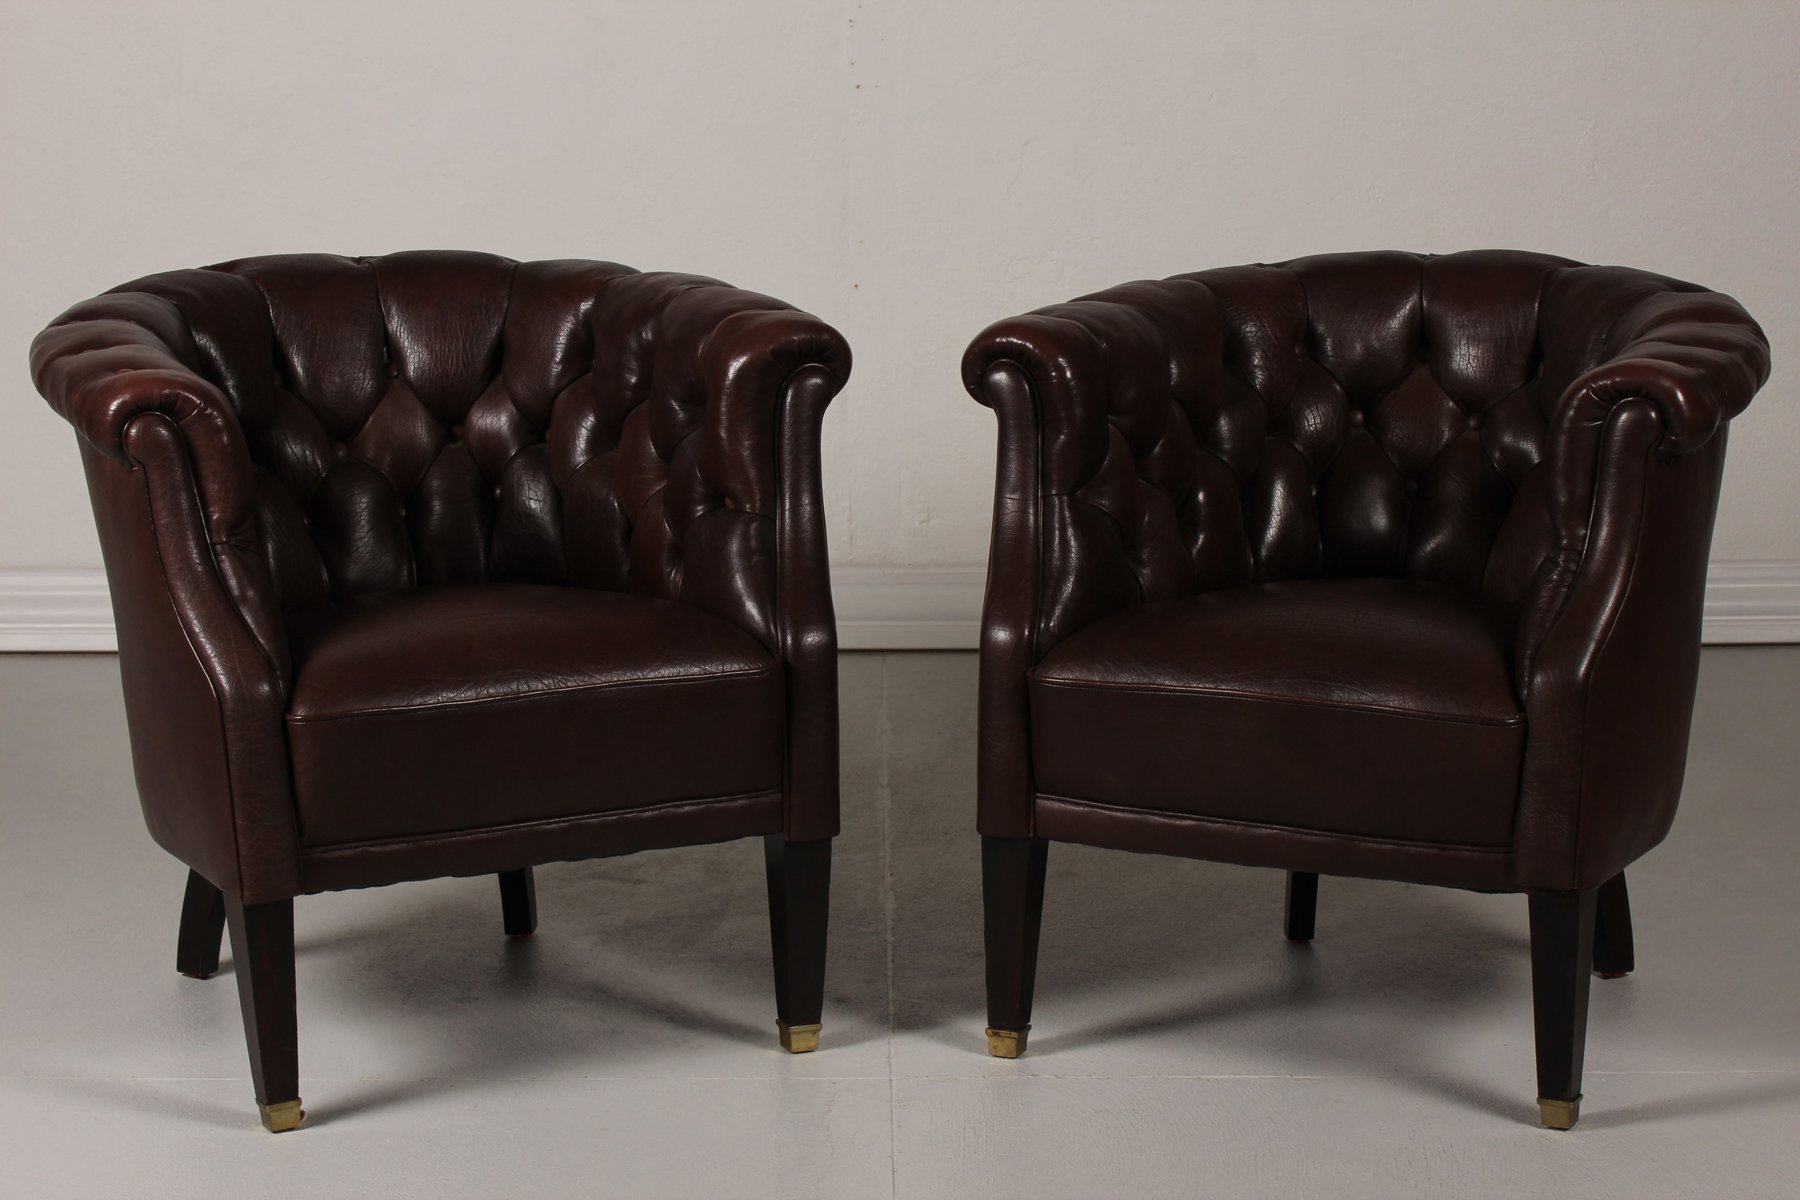 Superbe Danish Chesterfield Dark Brown Leather Armchairs, 1920s, Set Of 2